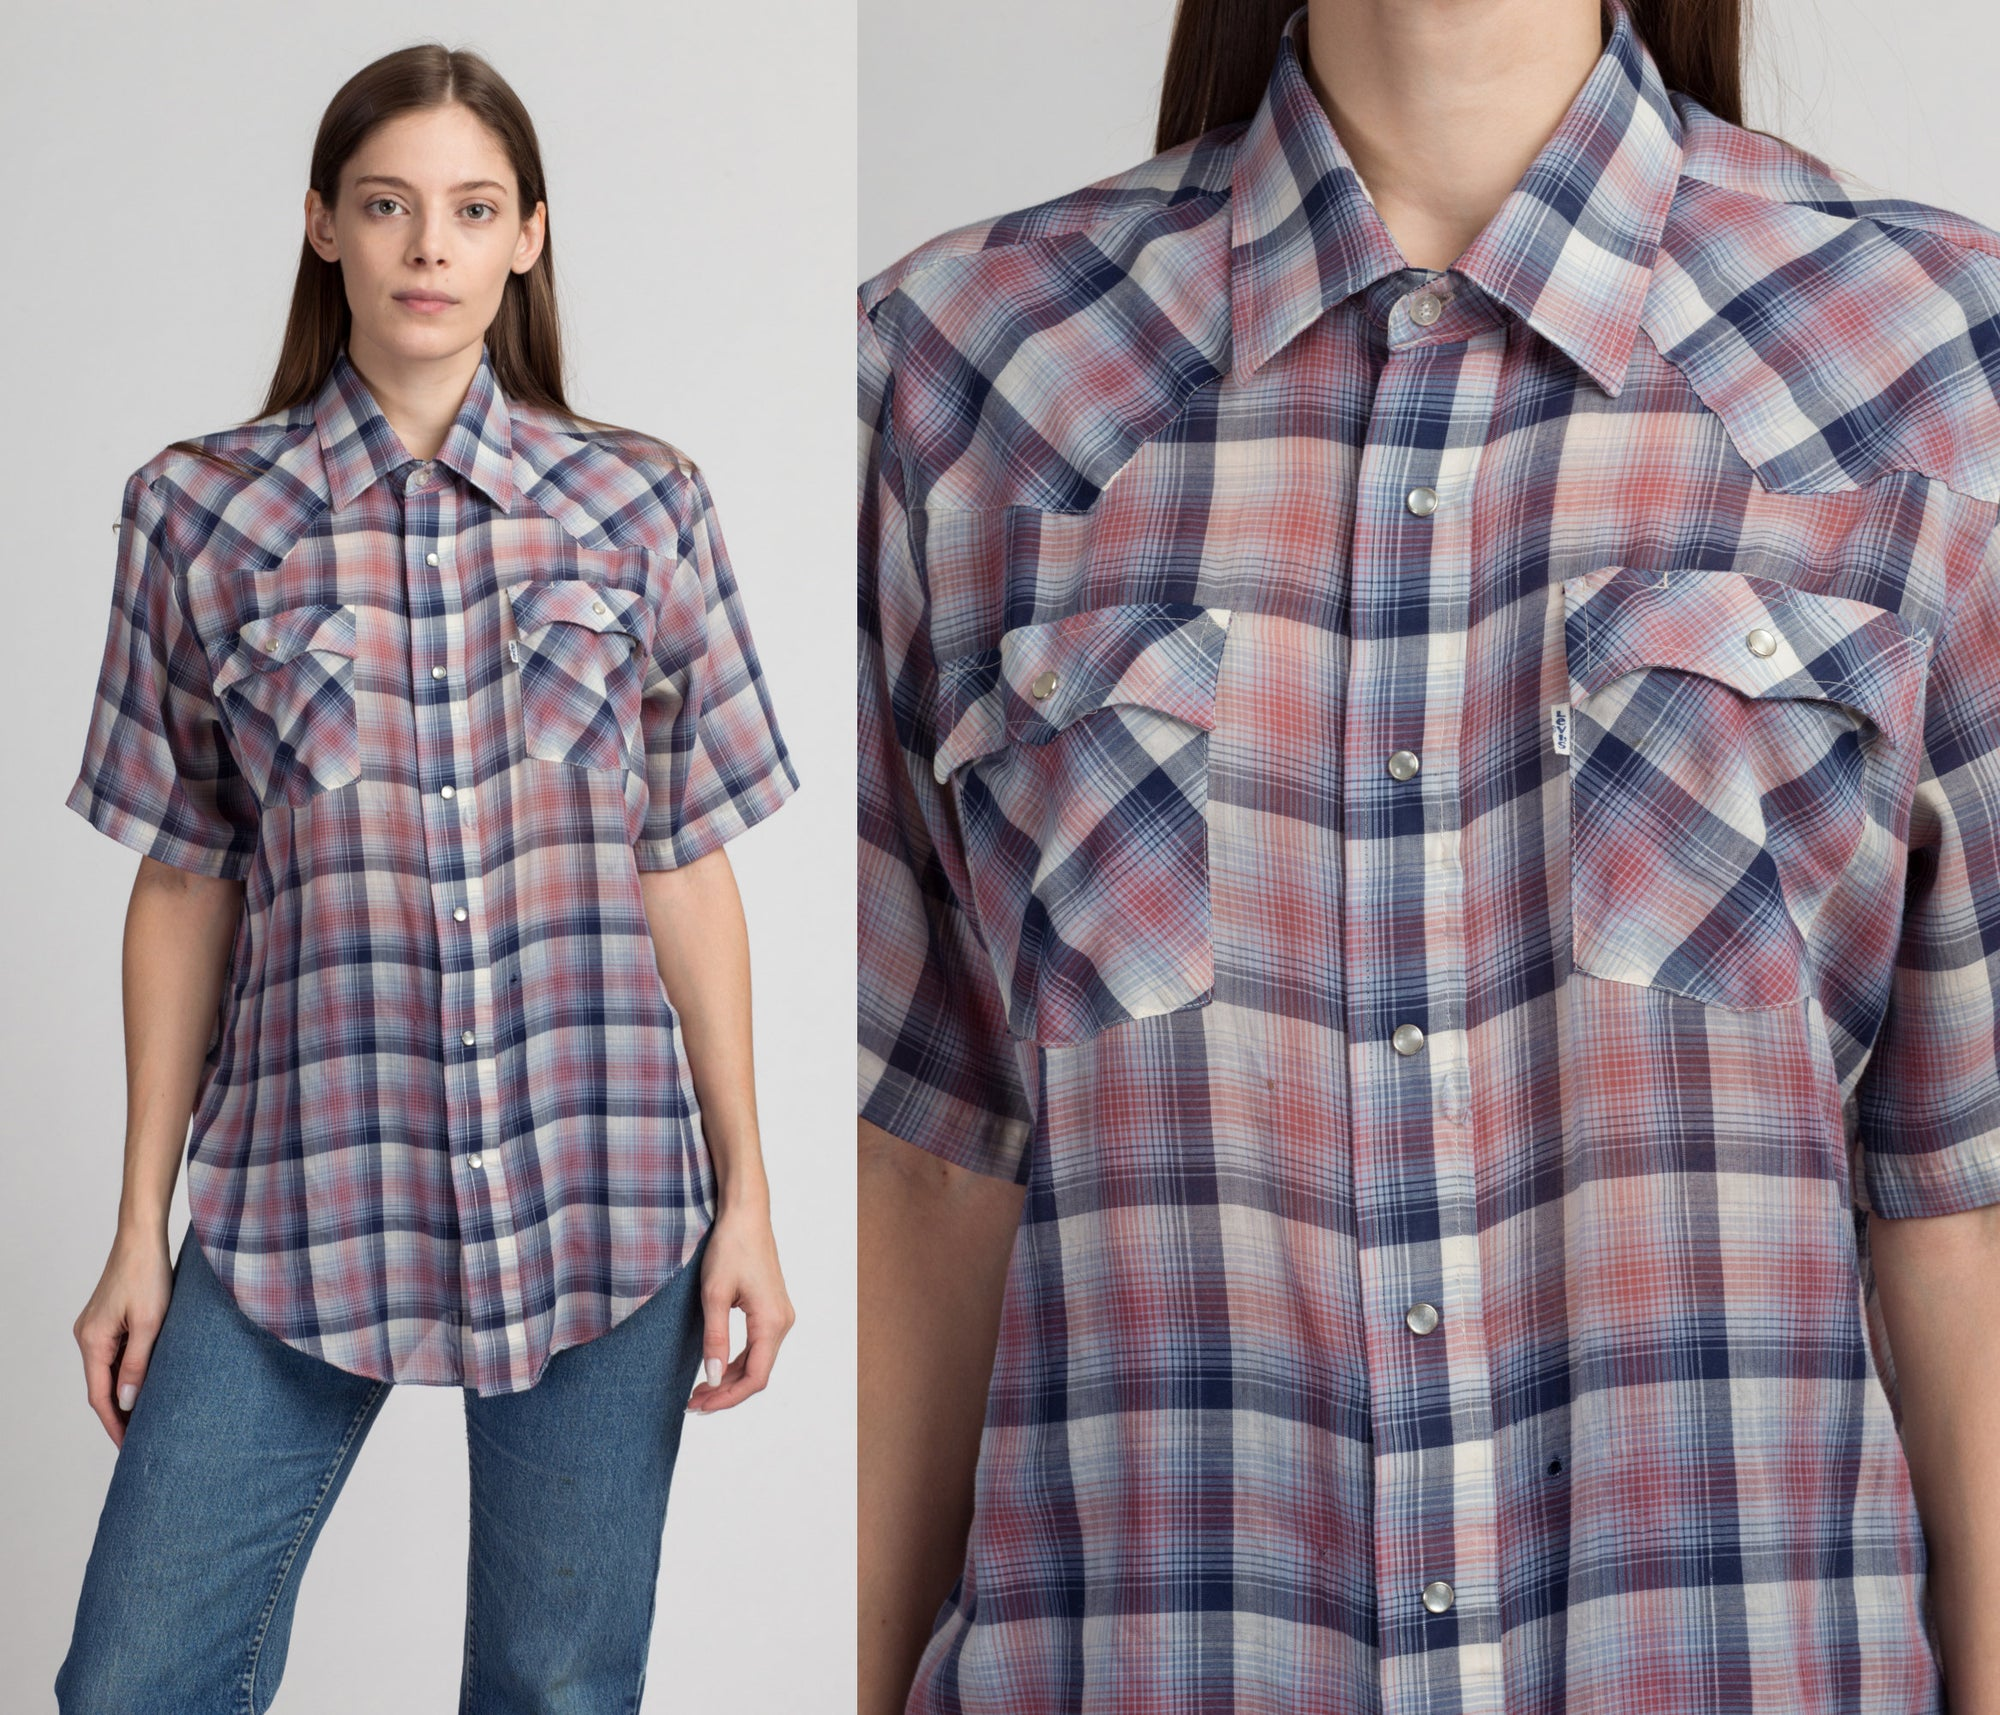 80s Levi's Plaid Pearl Snap Western Shirt - Men's Large | Vintage Short Sleeve Unisex Collared Rockabilly Top